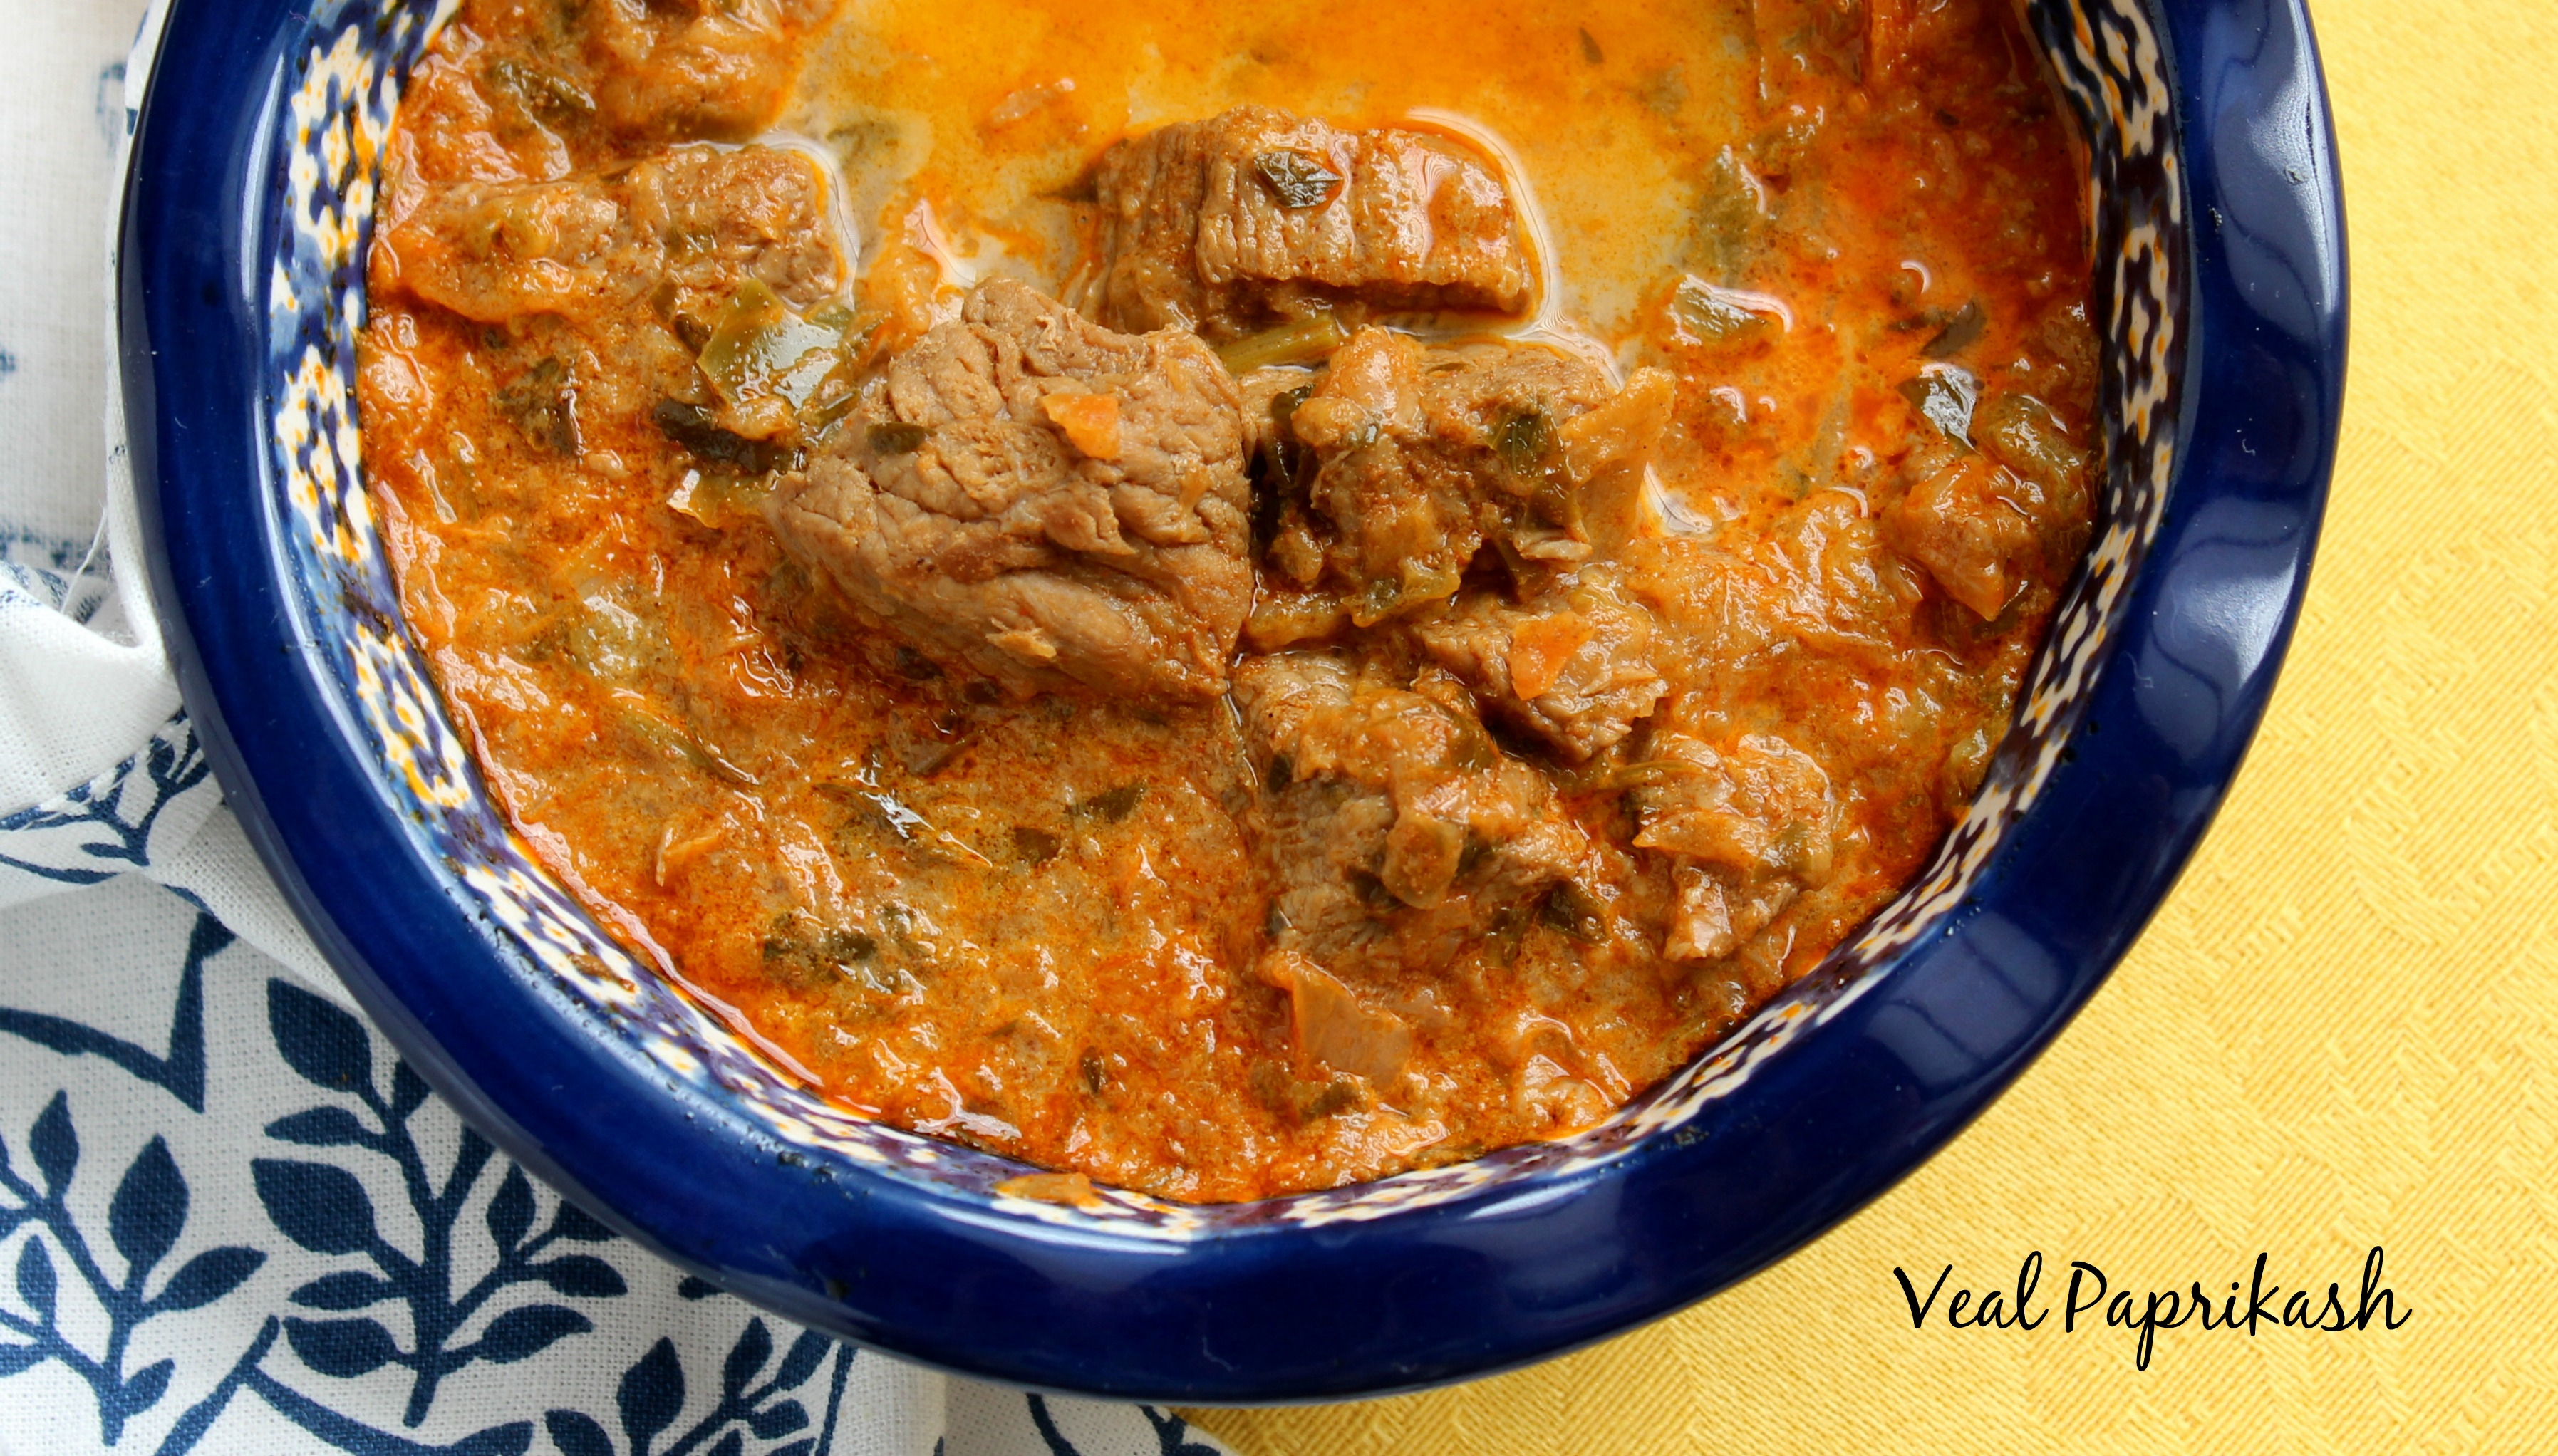 Not Too Much Pepper in THIS Paprikash!:  Mama Buddha's Veal Paprikash